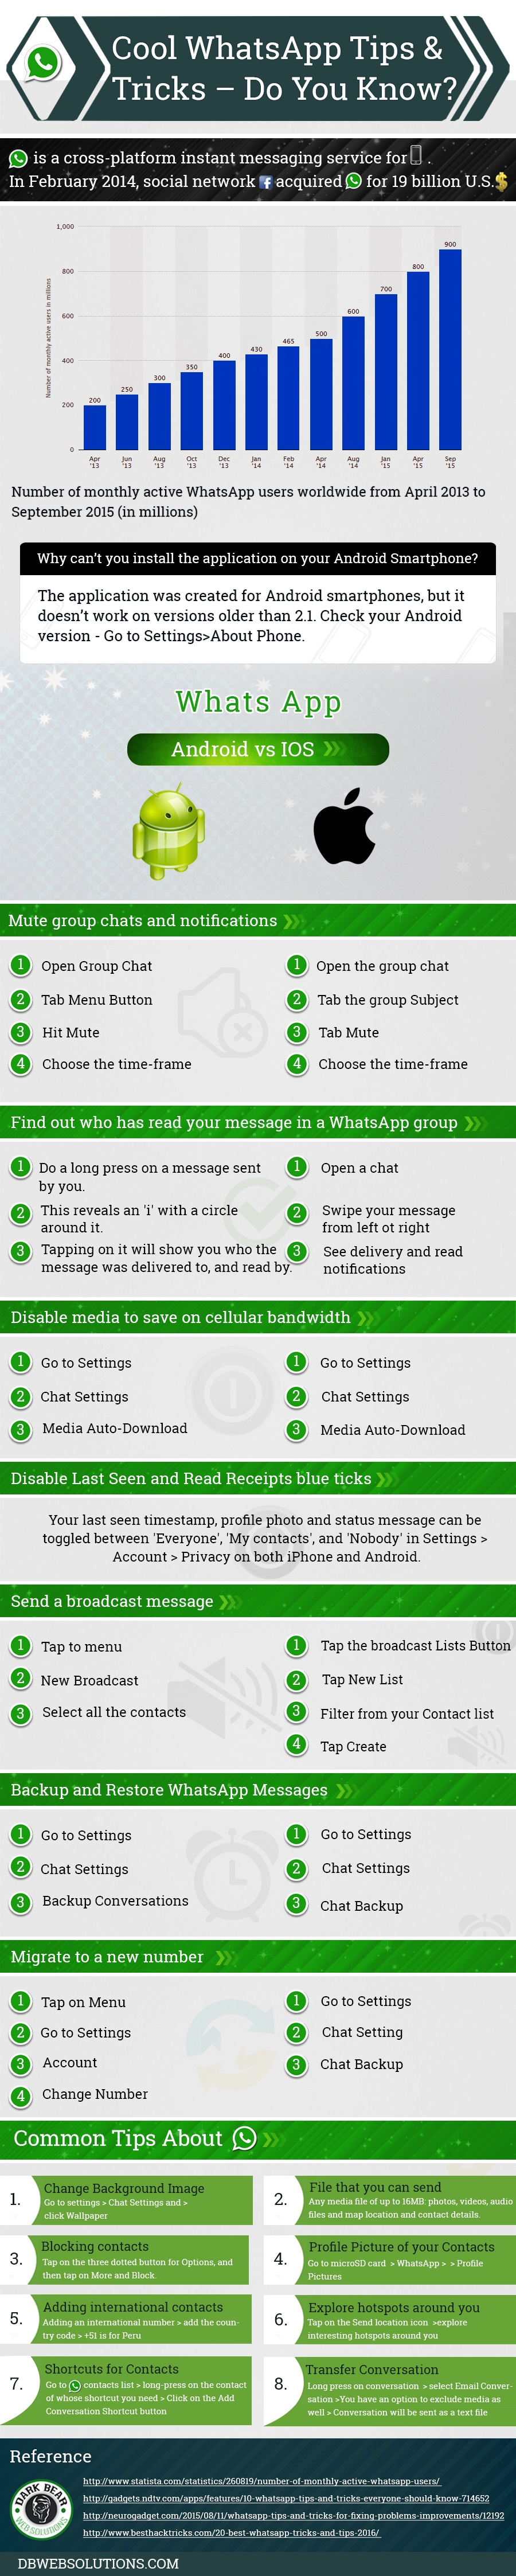 Cool Whats App Tips and Tricks - Infographic